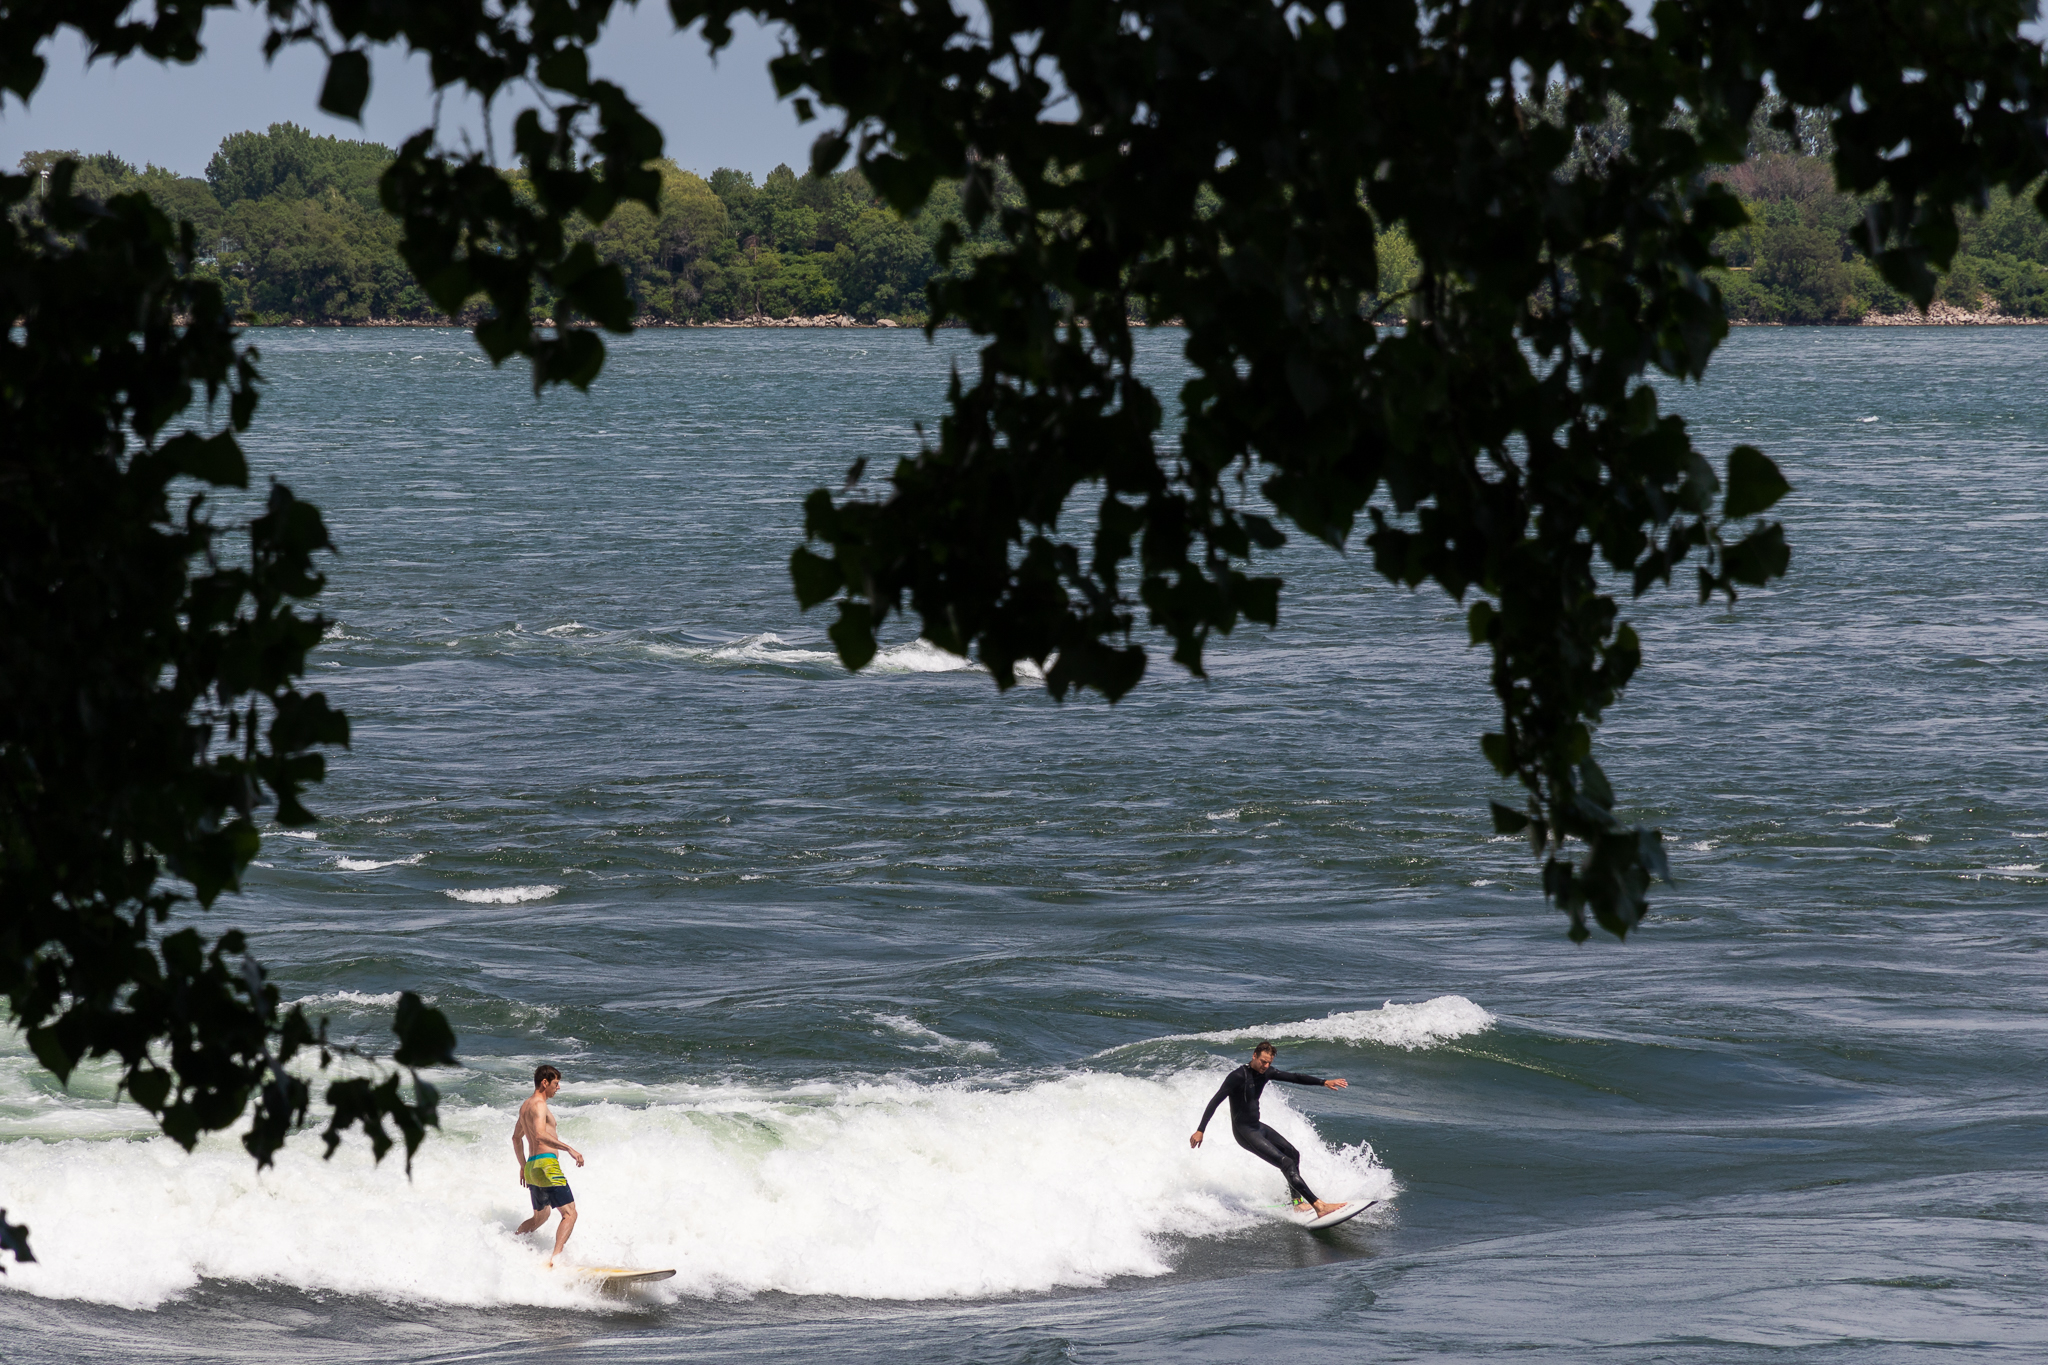 two male surfers surfing at habitat 67 in montreal canada